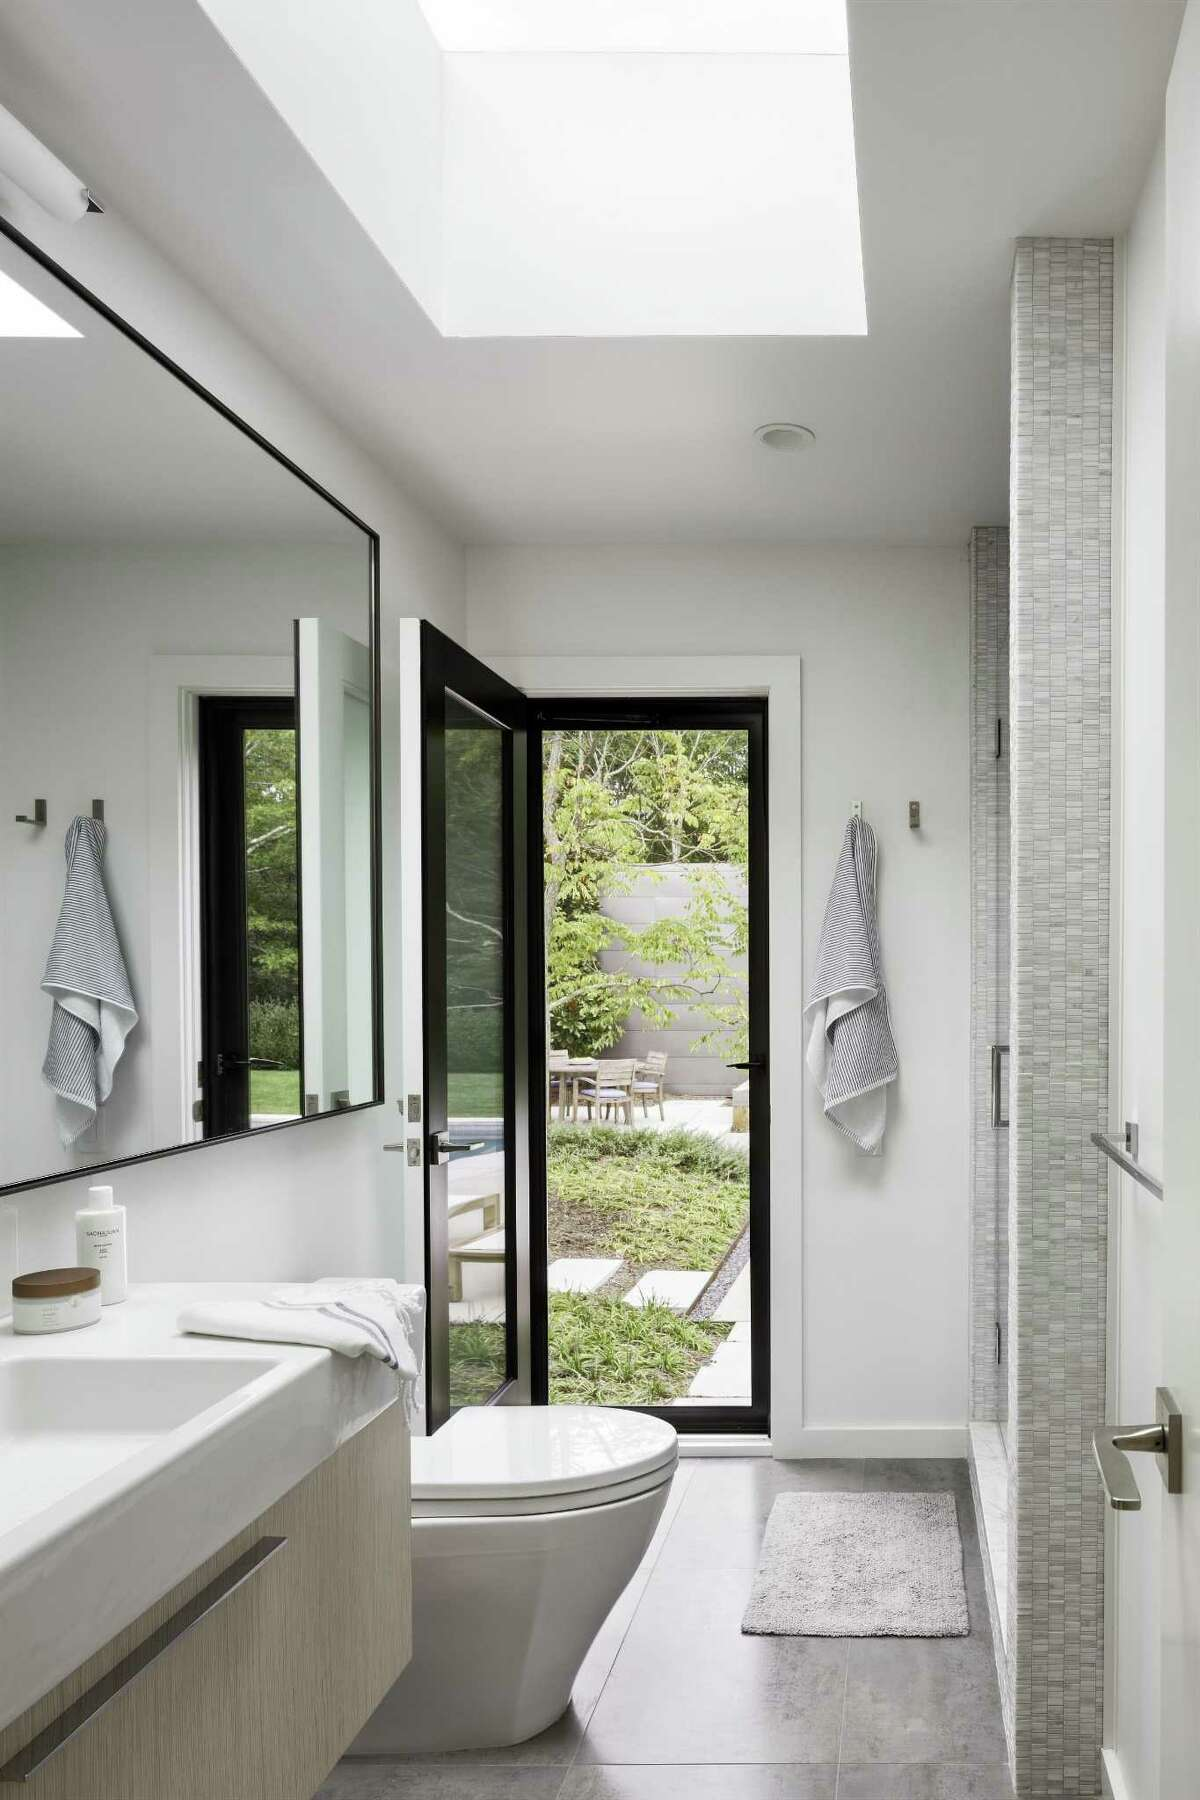 When this master bath was renovated, a door to the backyard was added for easy access outside. The glass door and skylight also allow more light into the relatively small space.